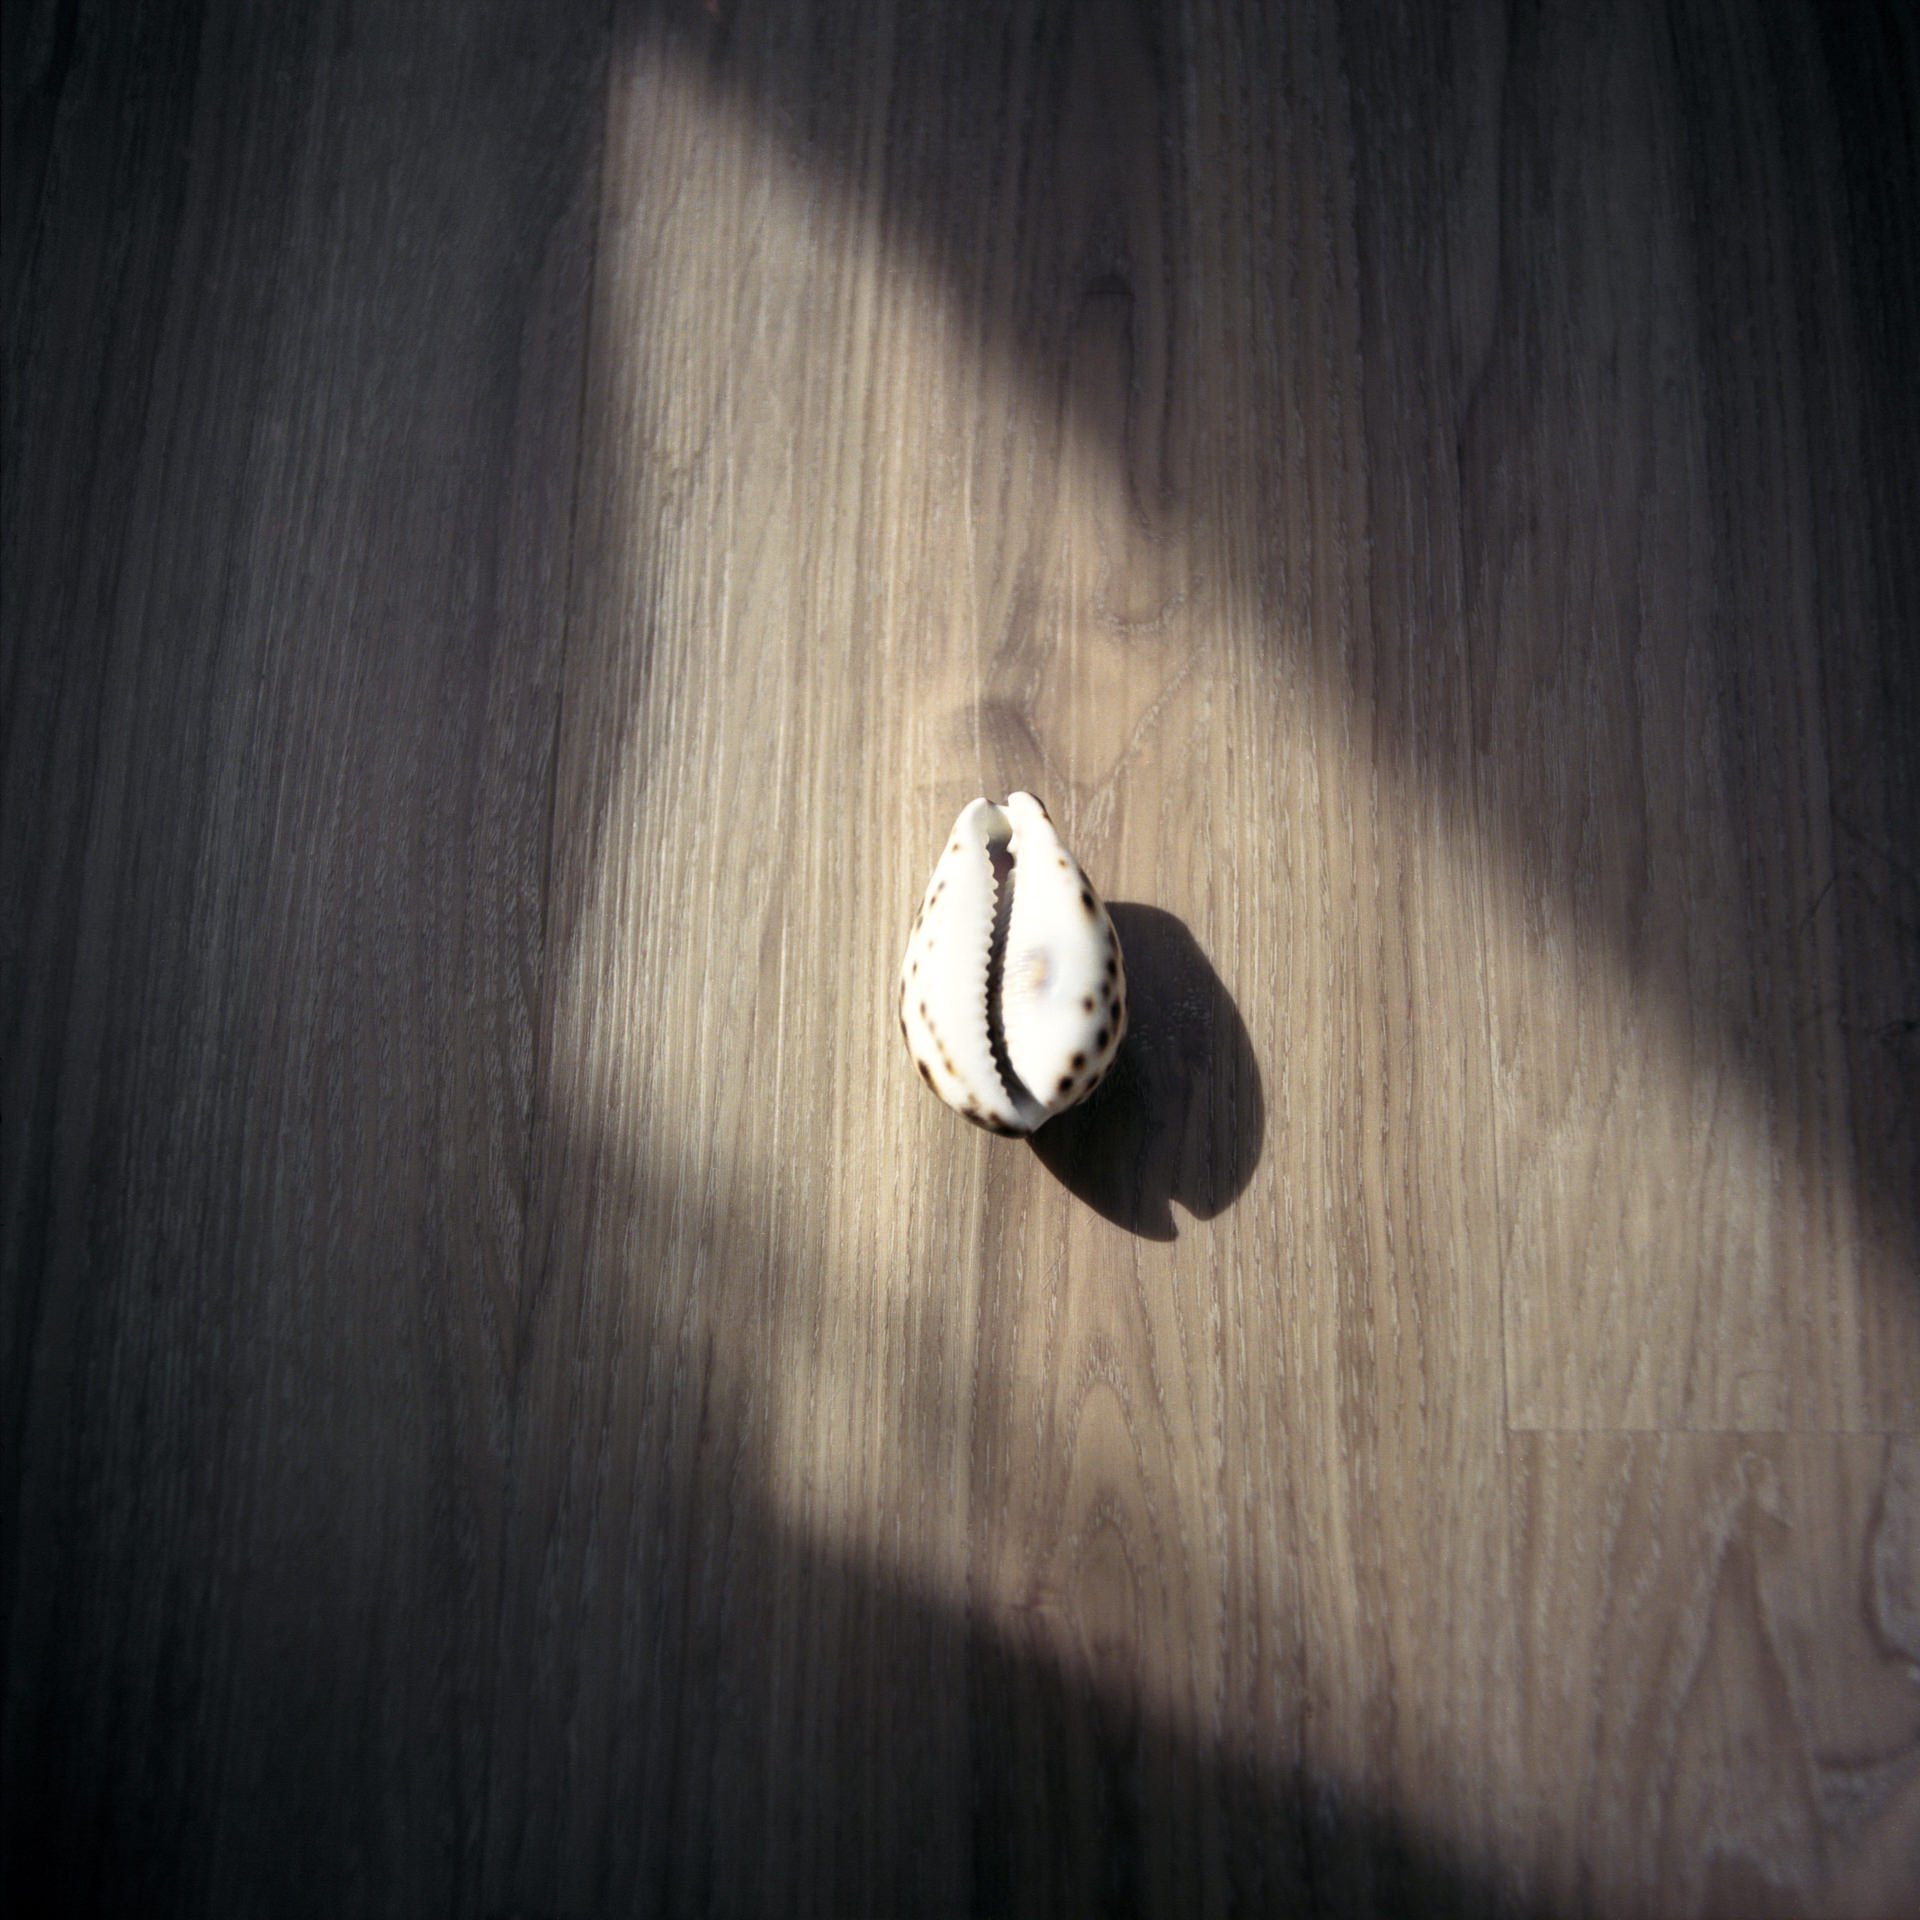 A small white shell on a wooden floor with shadows casting over it